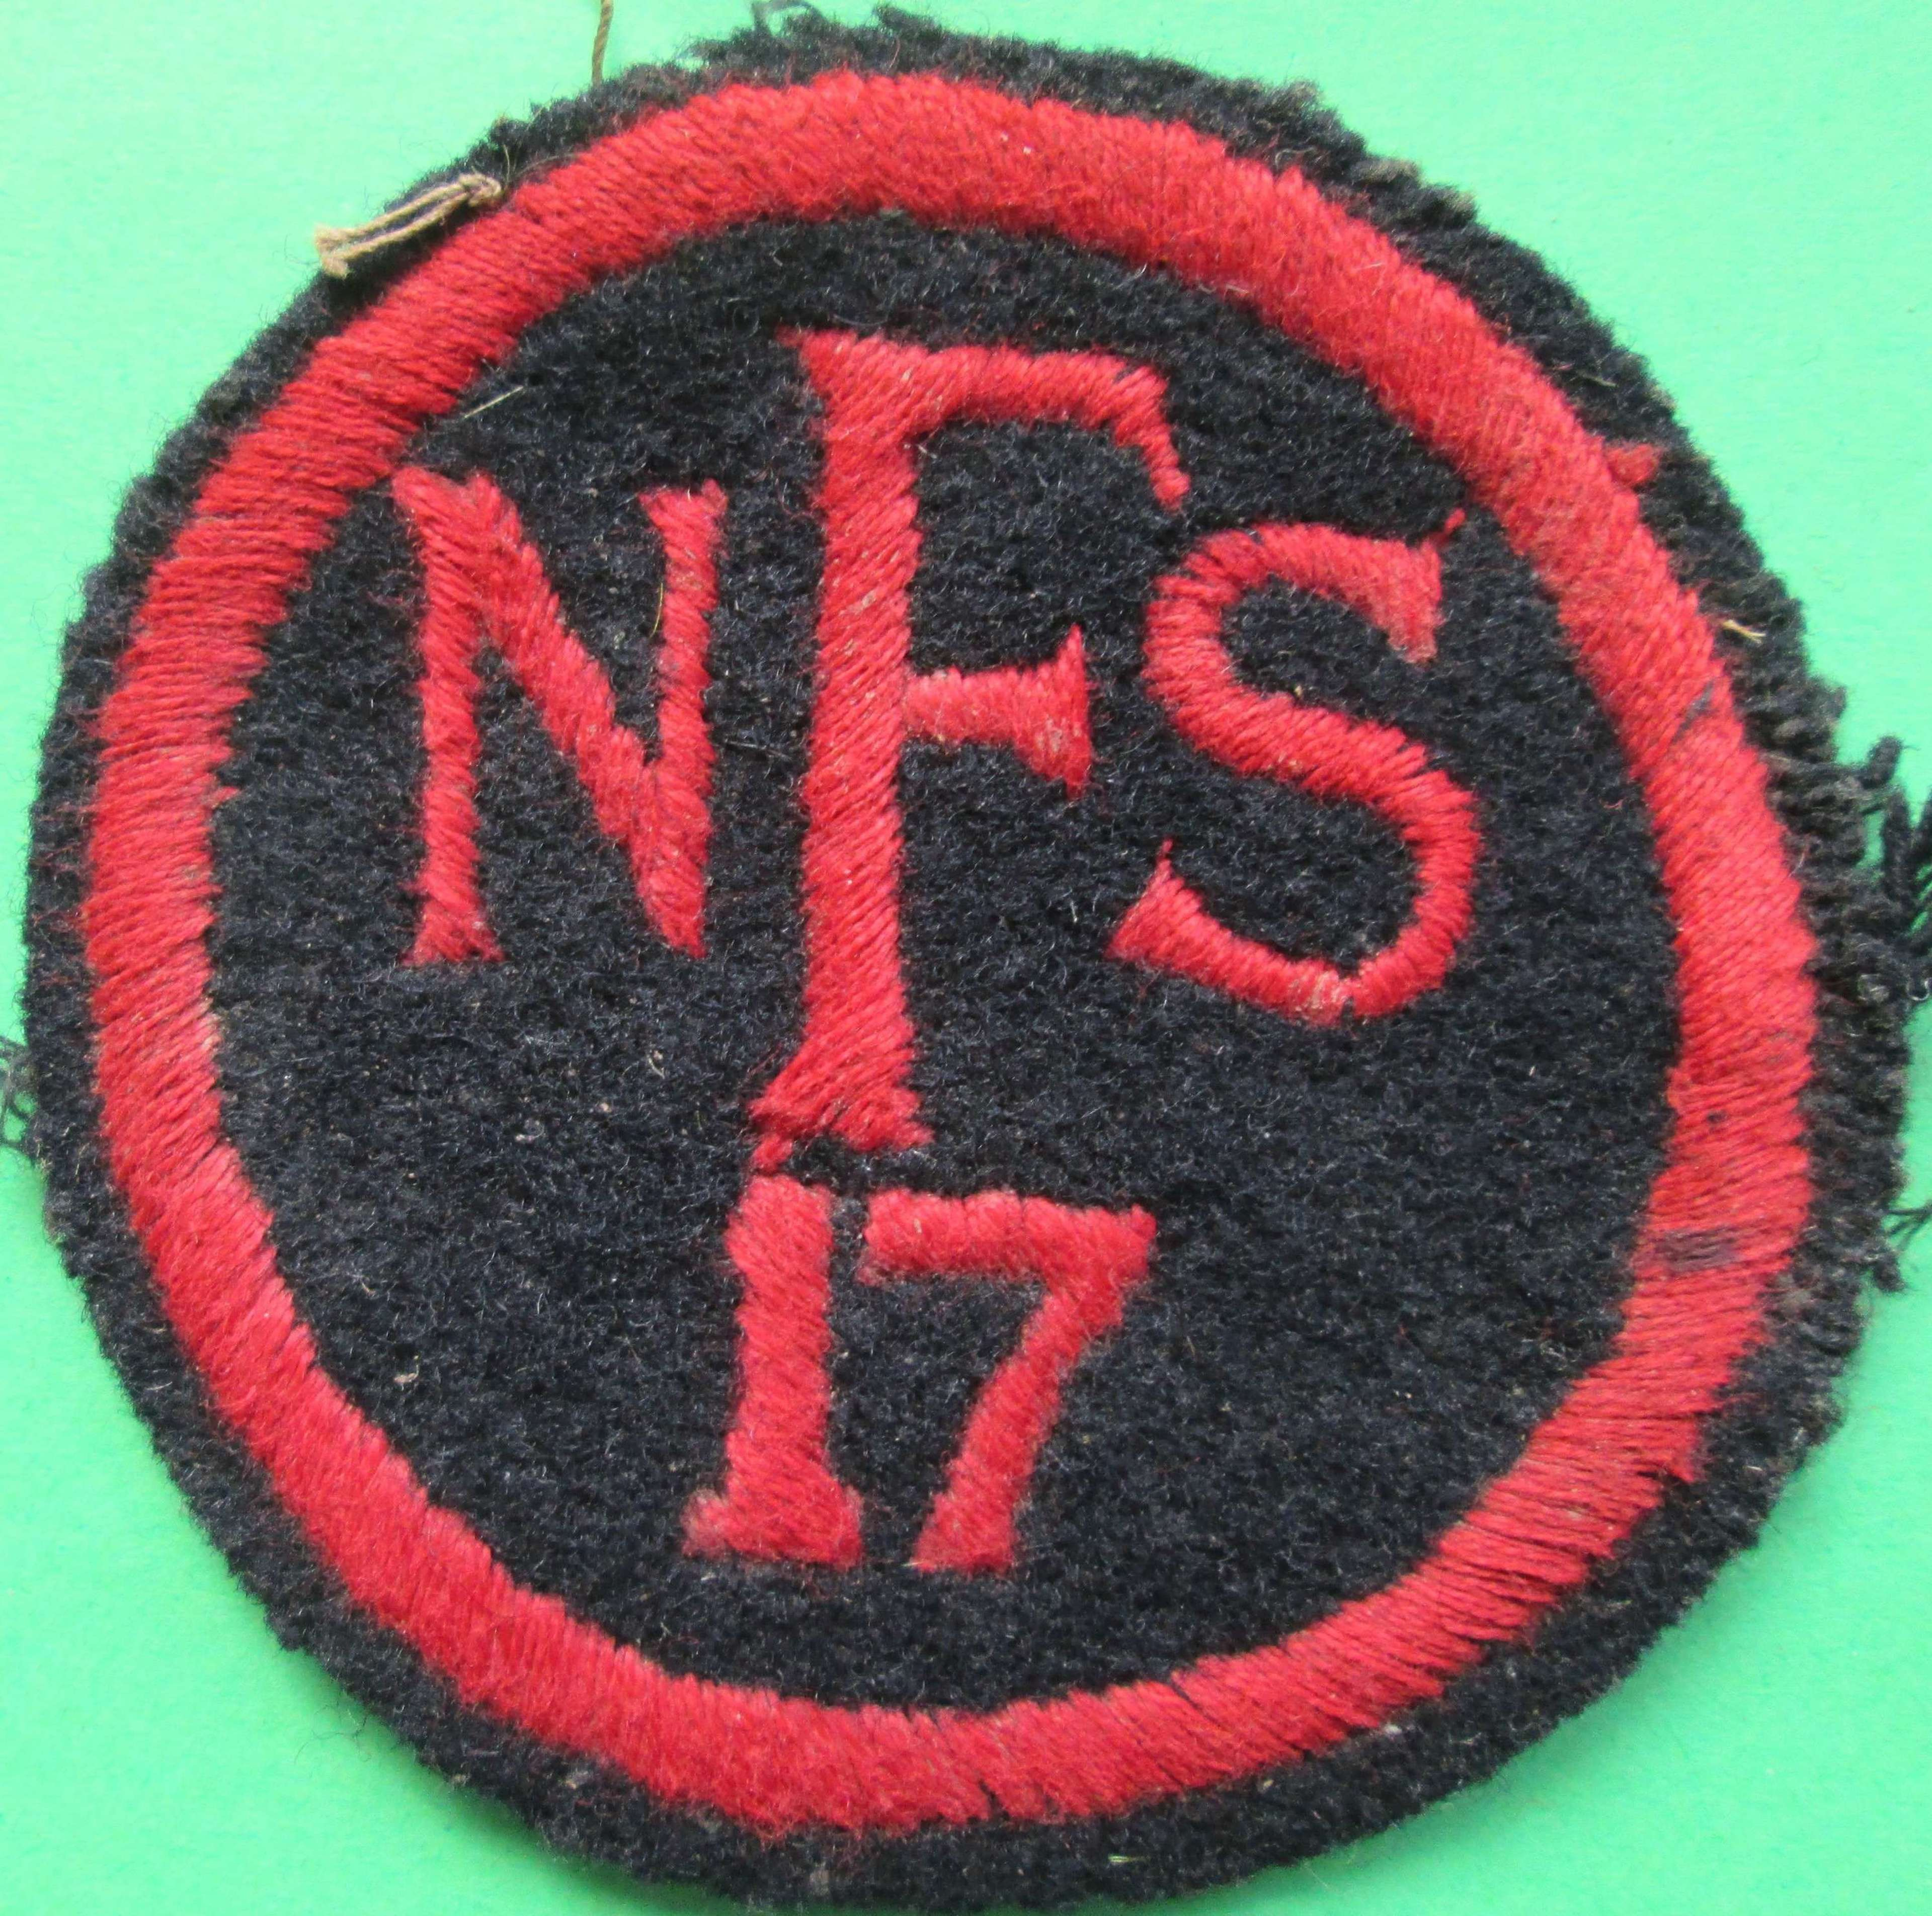 A NATIONAL FIRE SERVICE BADGE FOR AREA 17